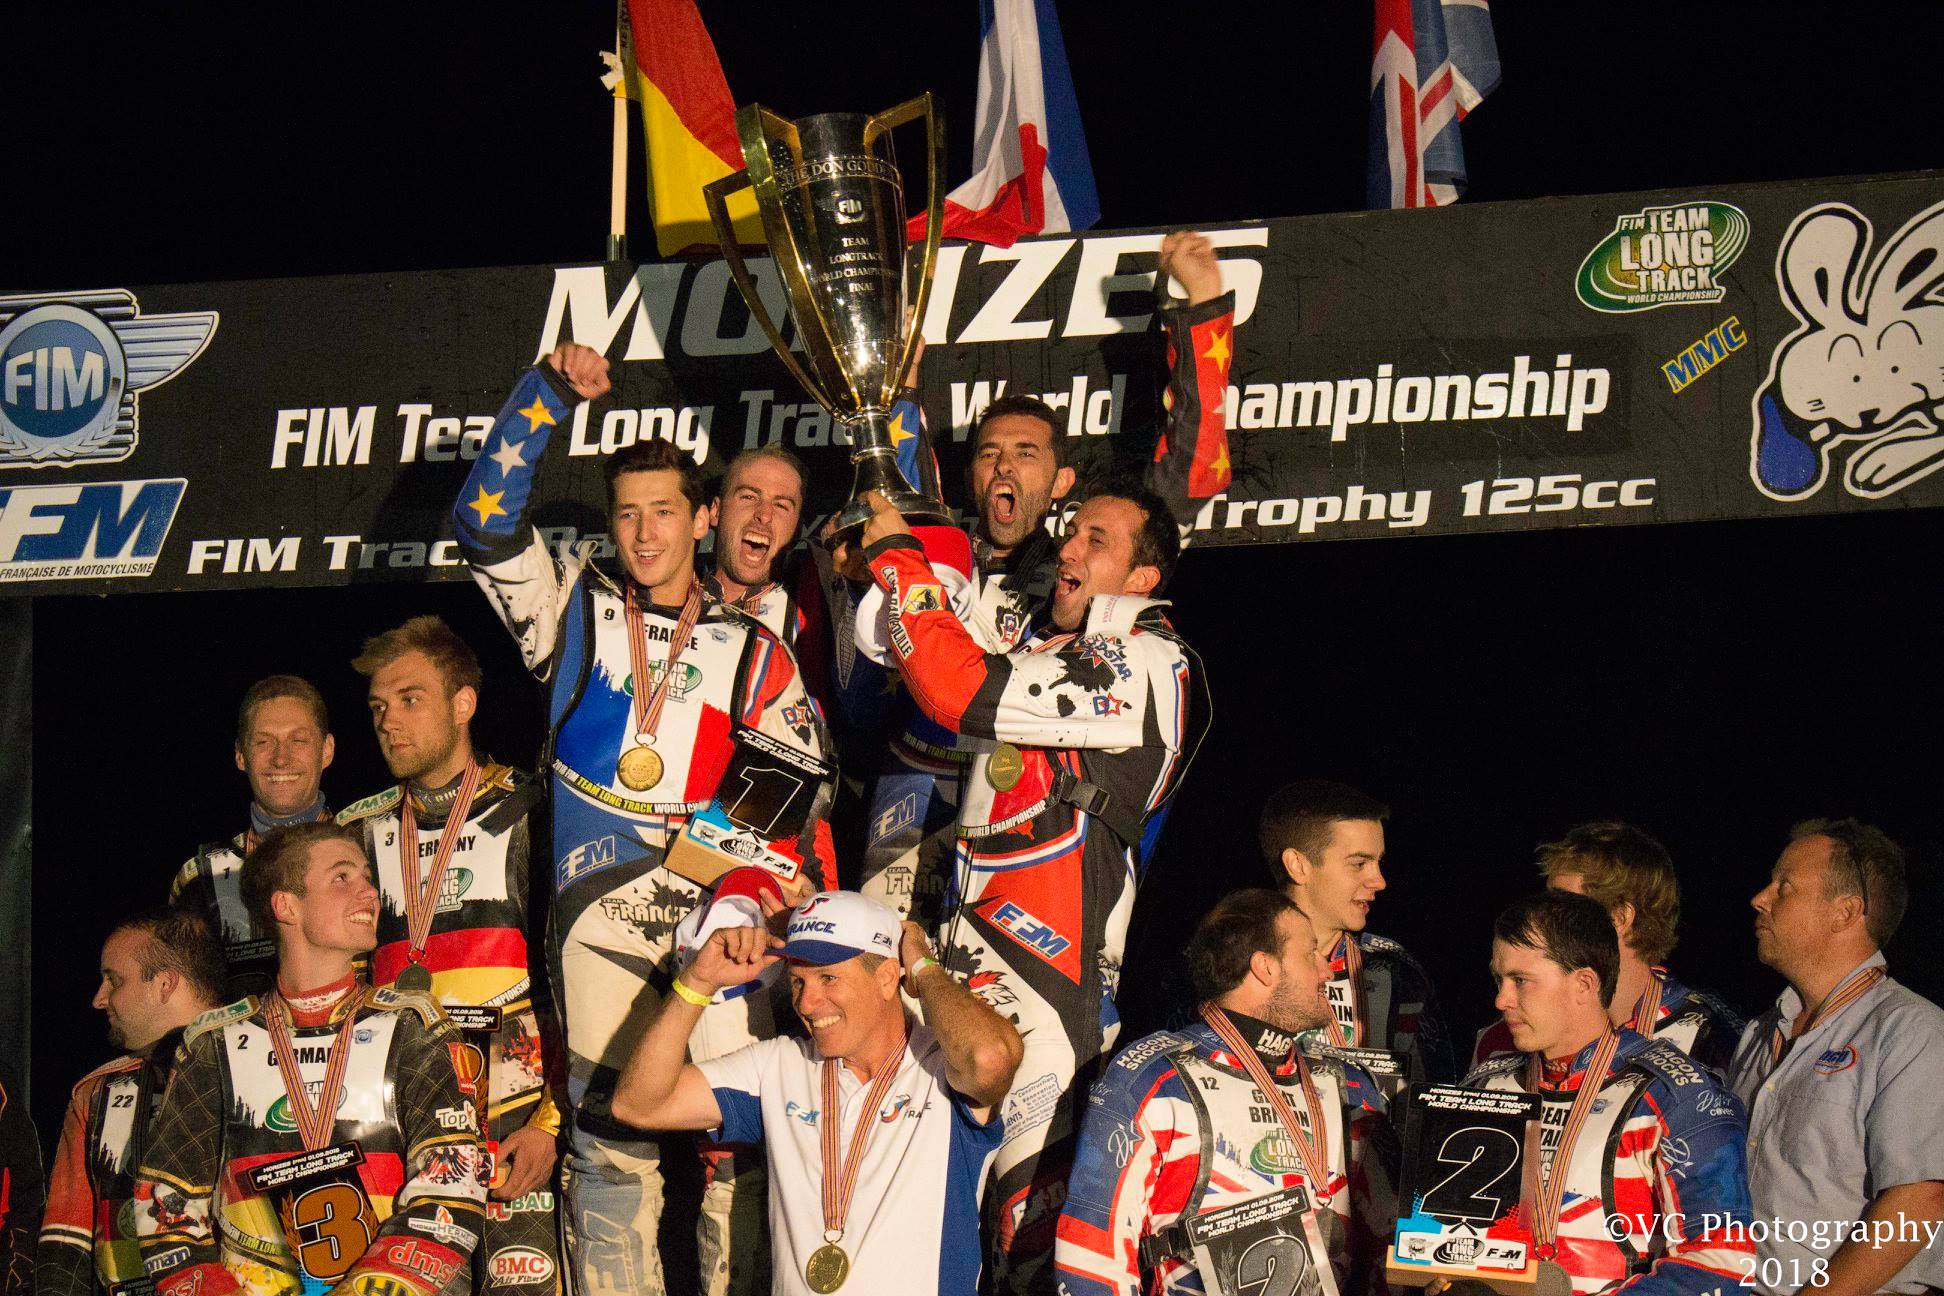 2018 LONGTRACK WORLD CHAMPION